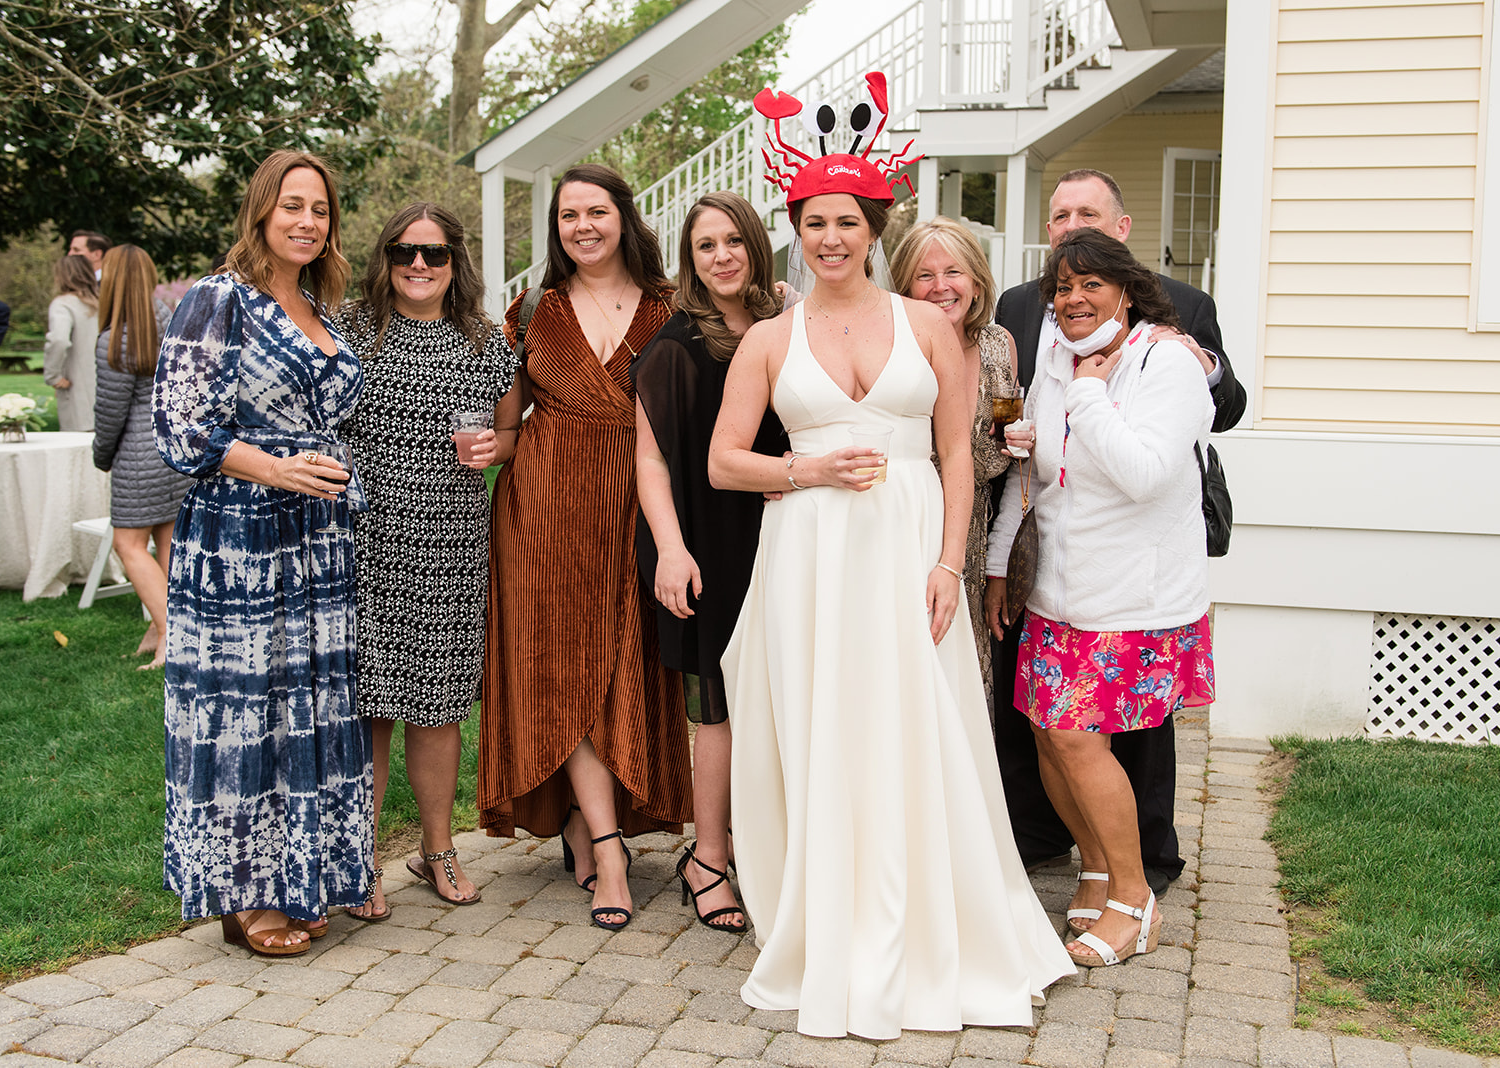 bride is wearing a funny crab hat as she is surrounded by her friends and family